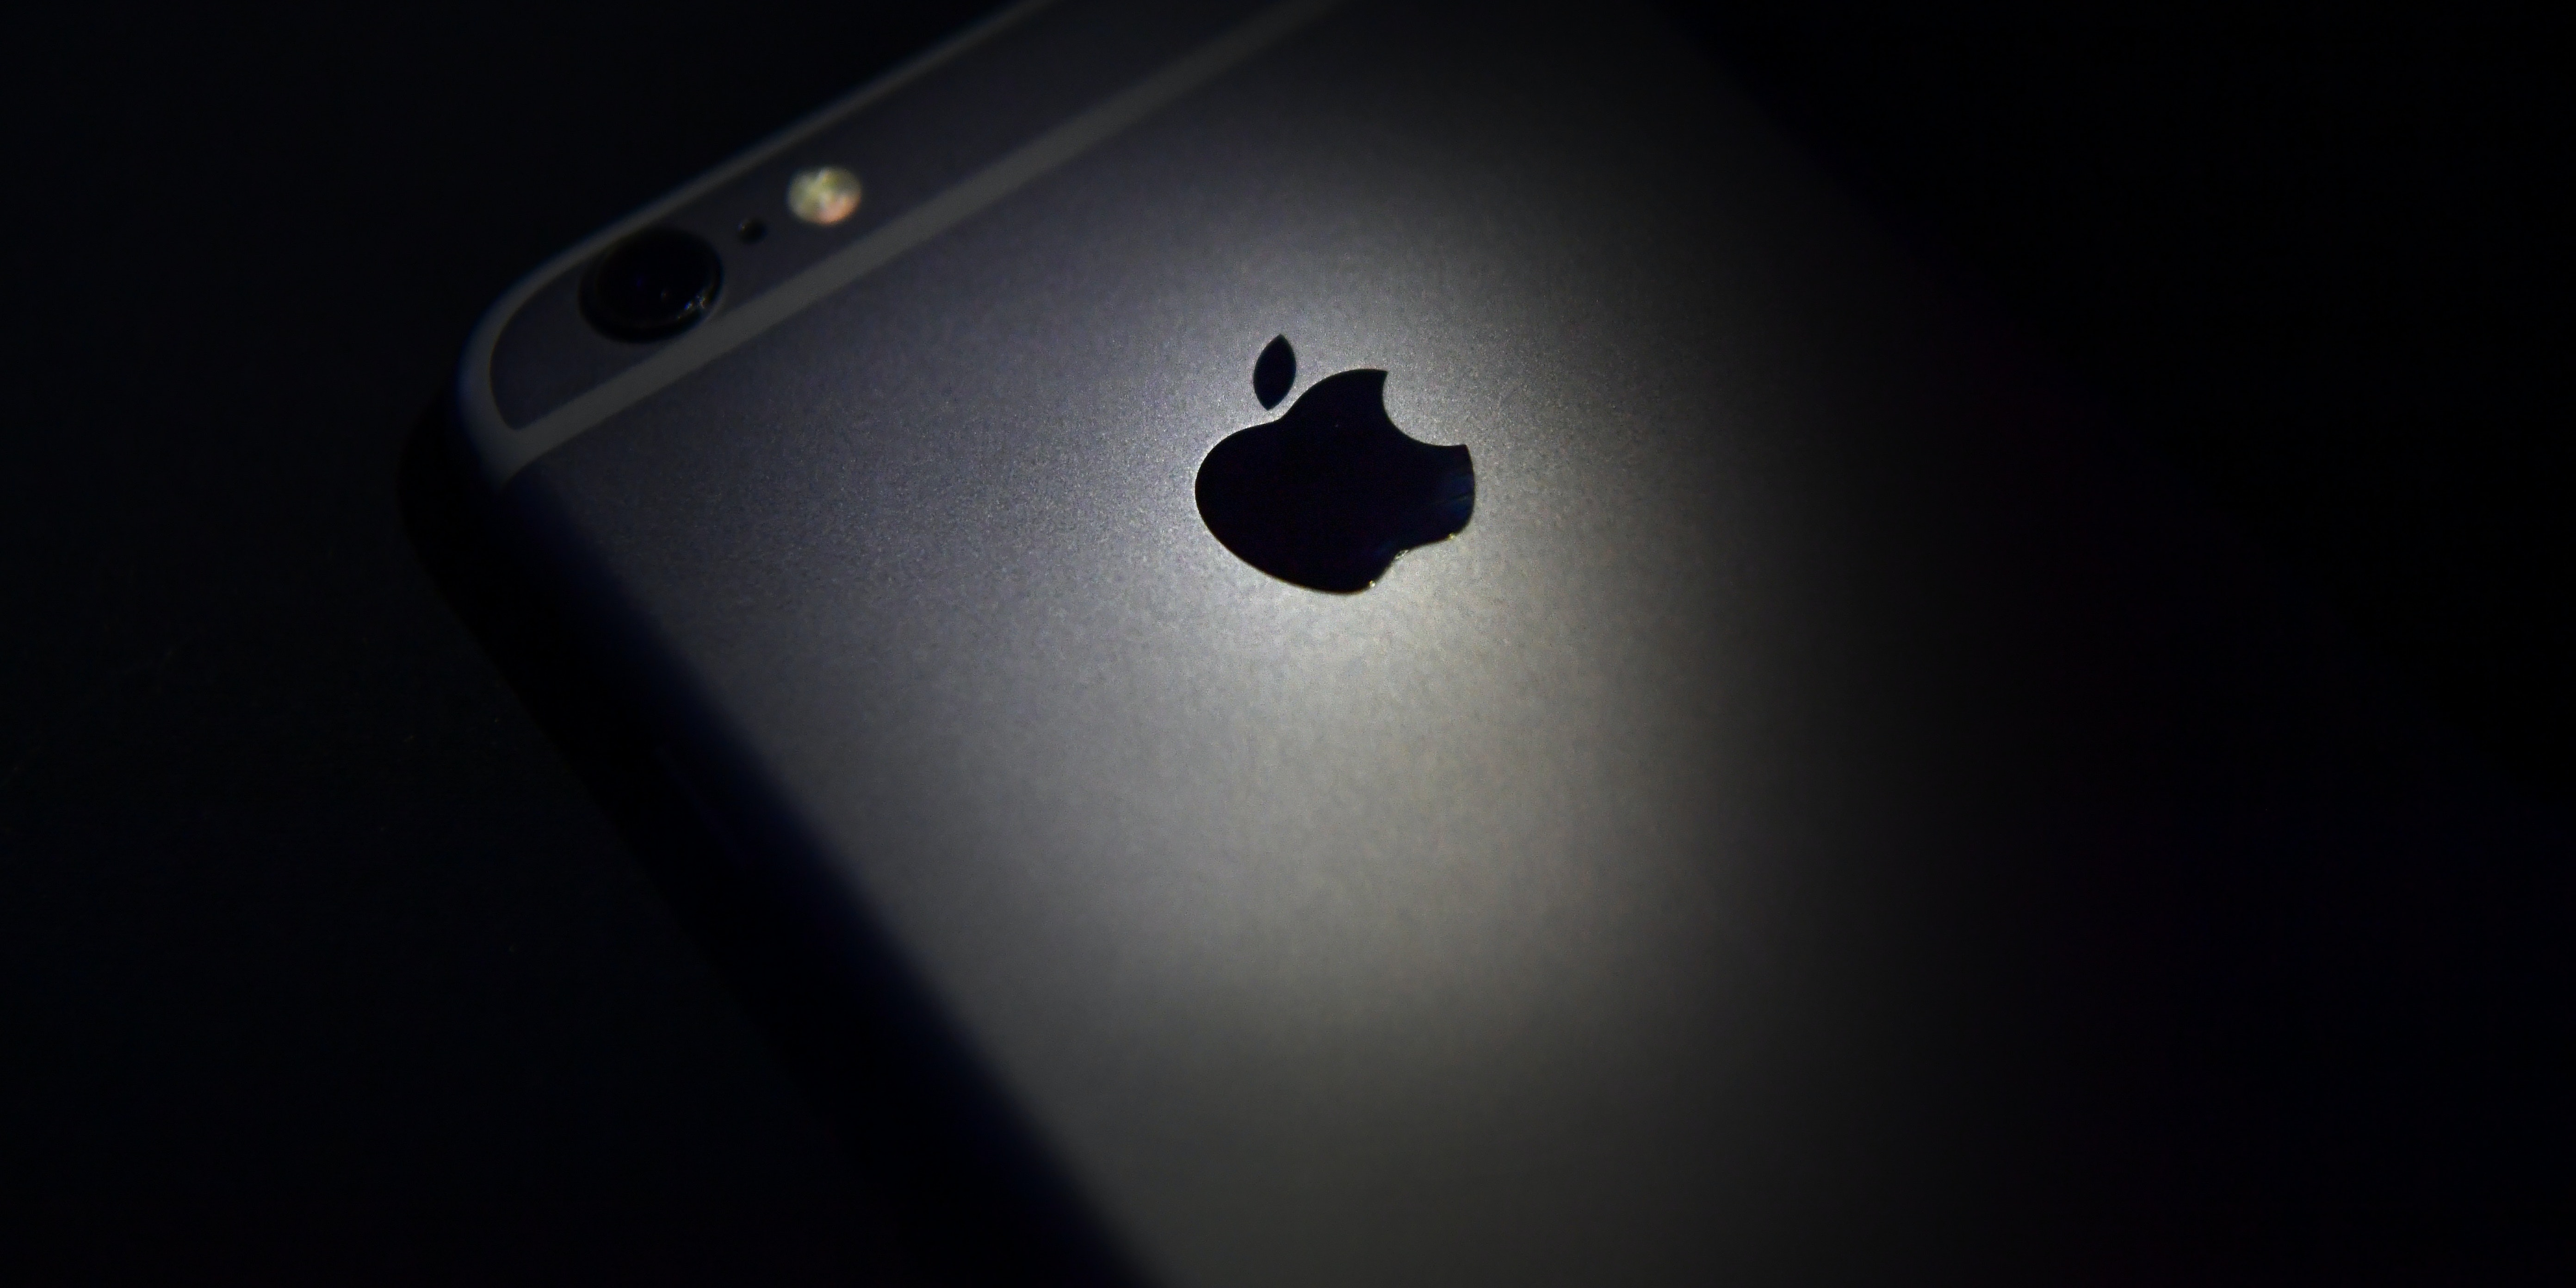 LONDON, ENGLAND - AUGUST 03:  The Apple logo is displayed on the back of an iPhone on August 3, 2016 in London, England.  (Photo by Carl Court/Getty Images)